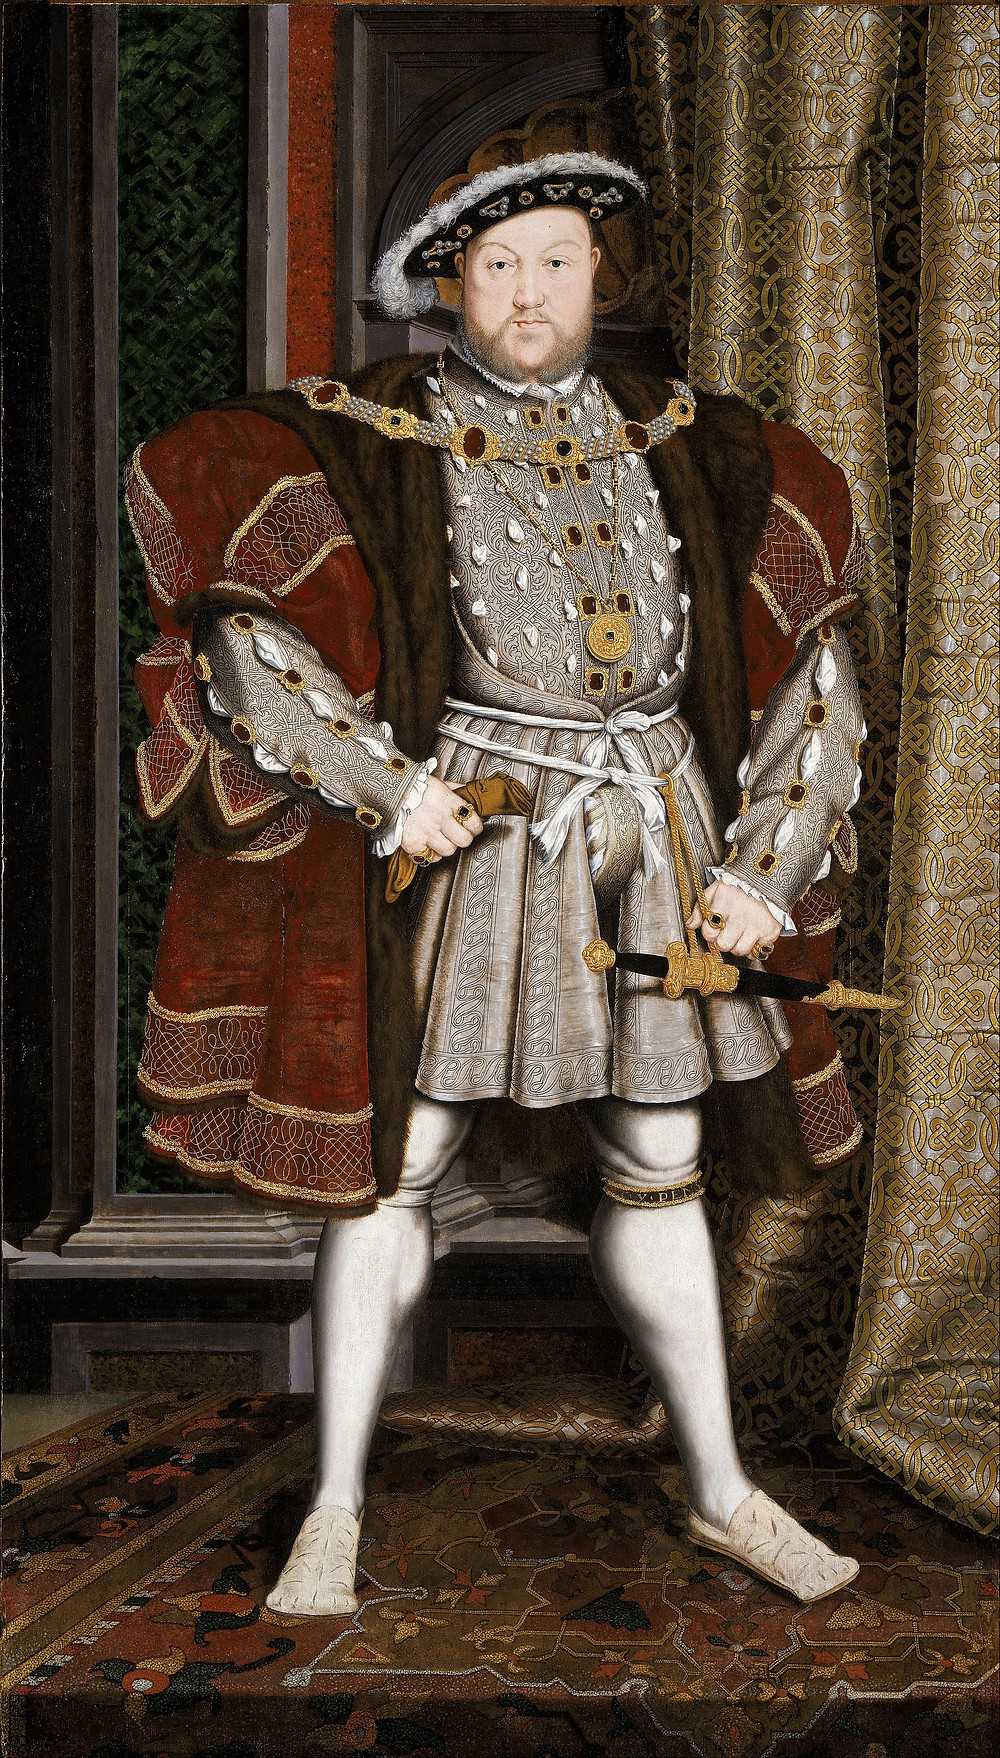 King Henry VIII the second monarch from the House of Tudor, famous for his six wives.